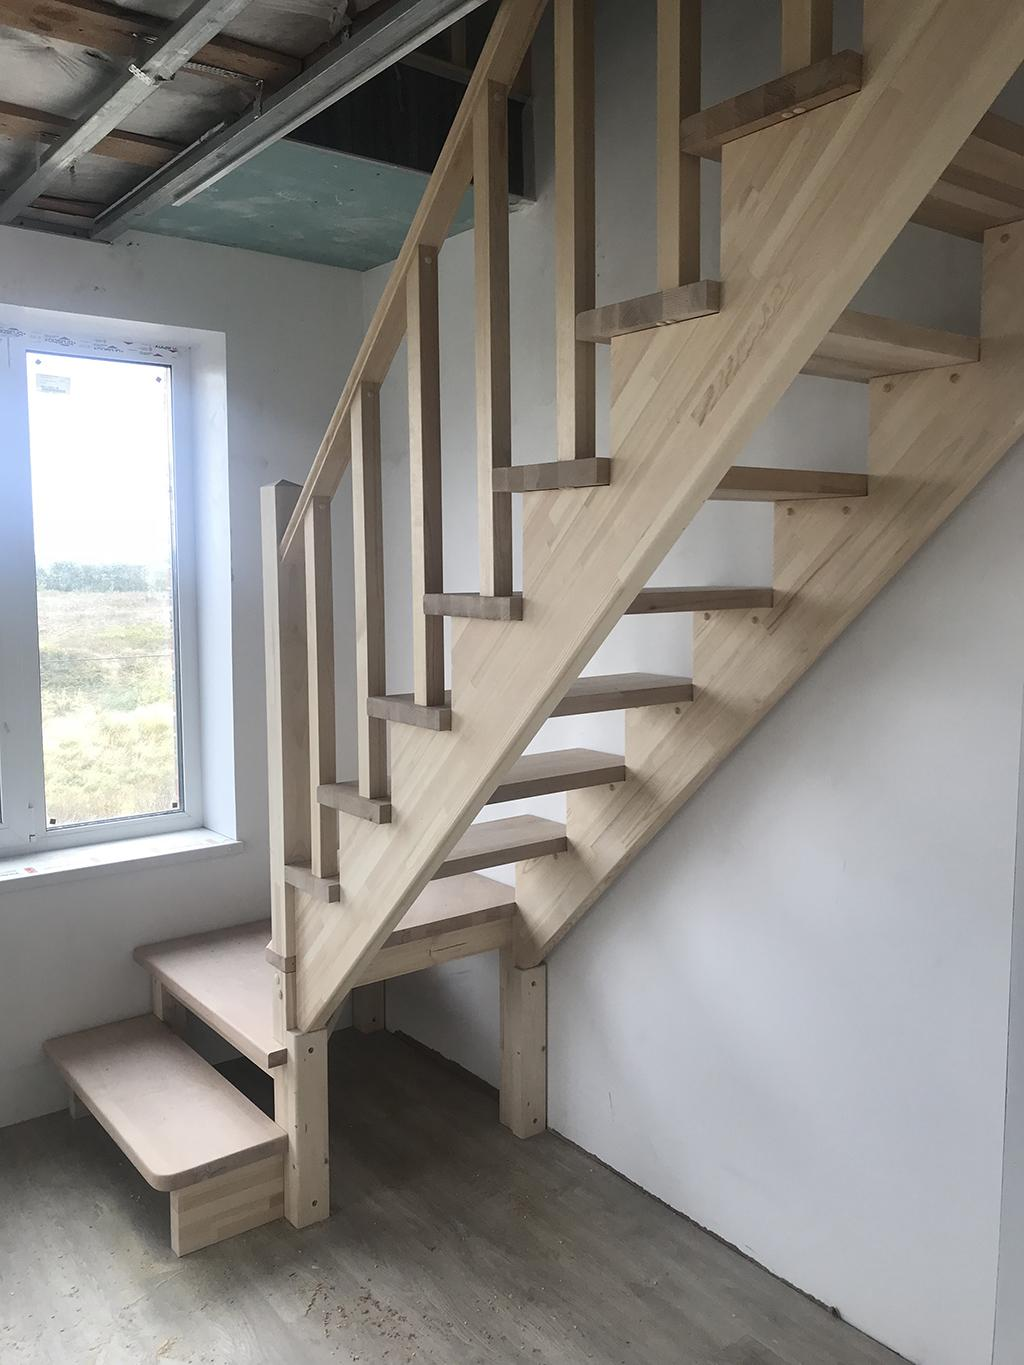 Winder staircase with wooden steps